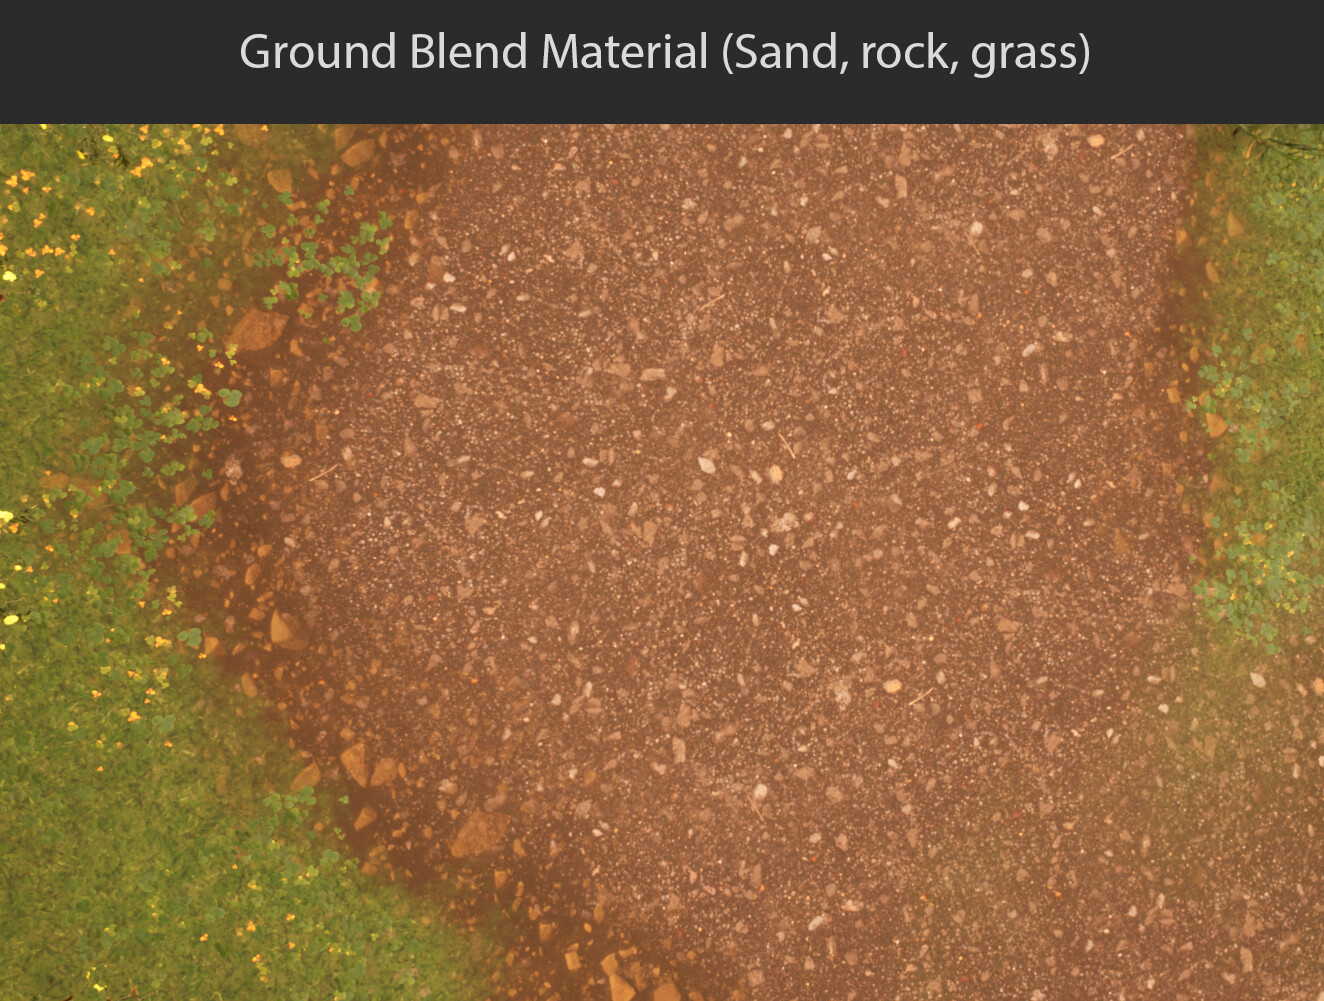 Ground Blend Material: